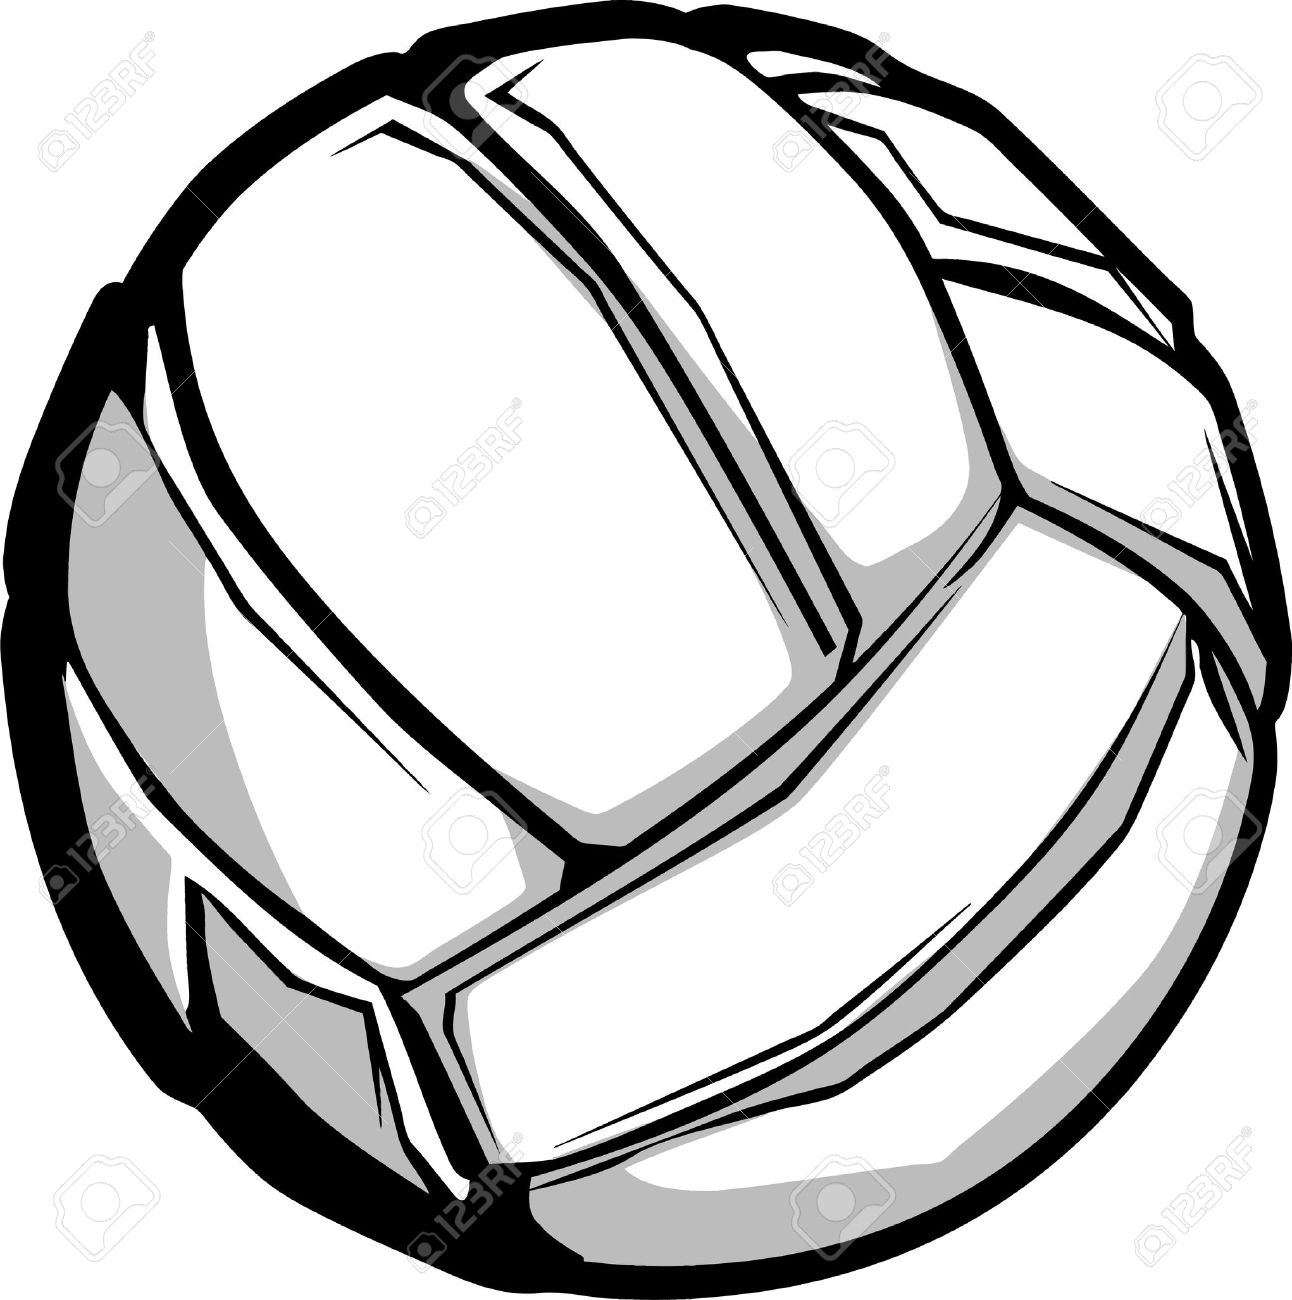 volleyball vector image royalty free cliparts vectors and stock rh 123rf com volleyball vector free volleyball vector clip art free